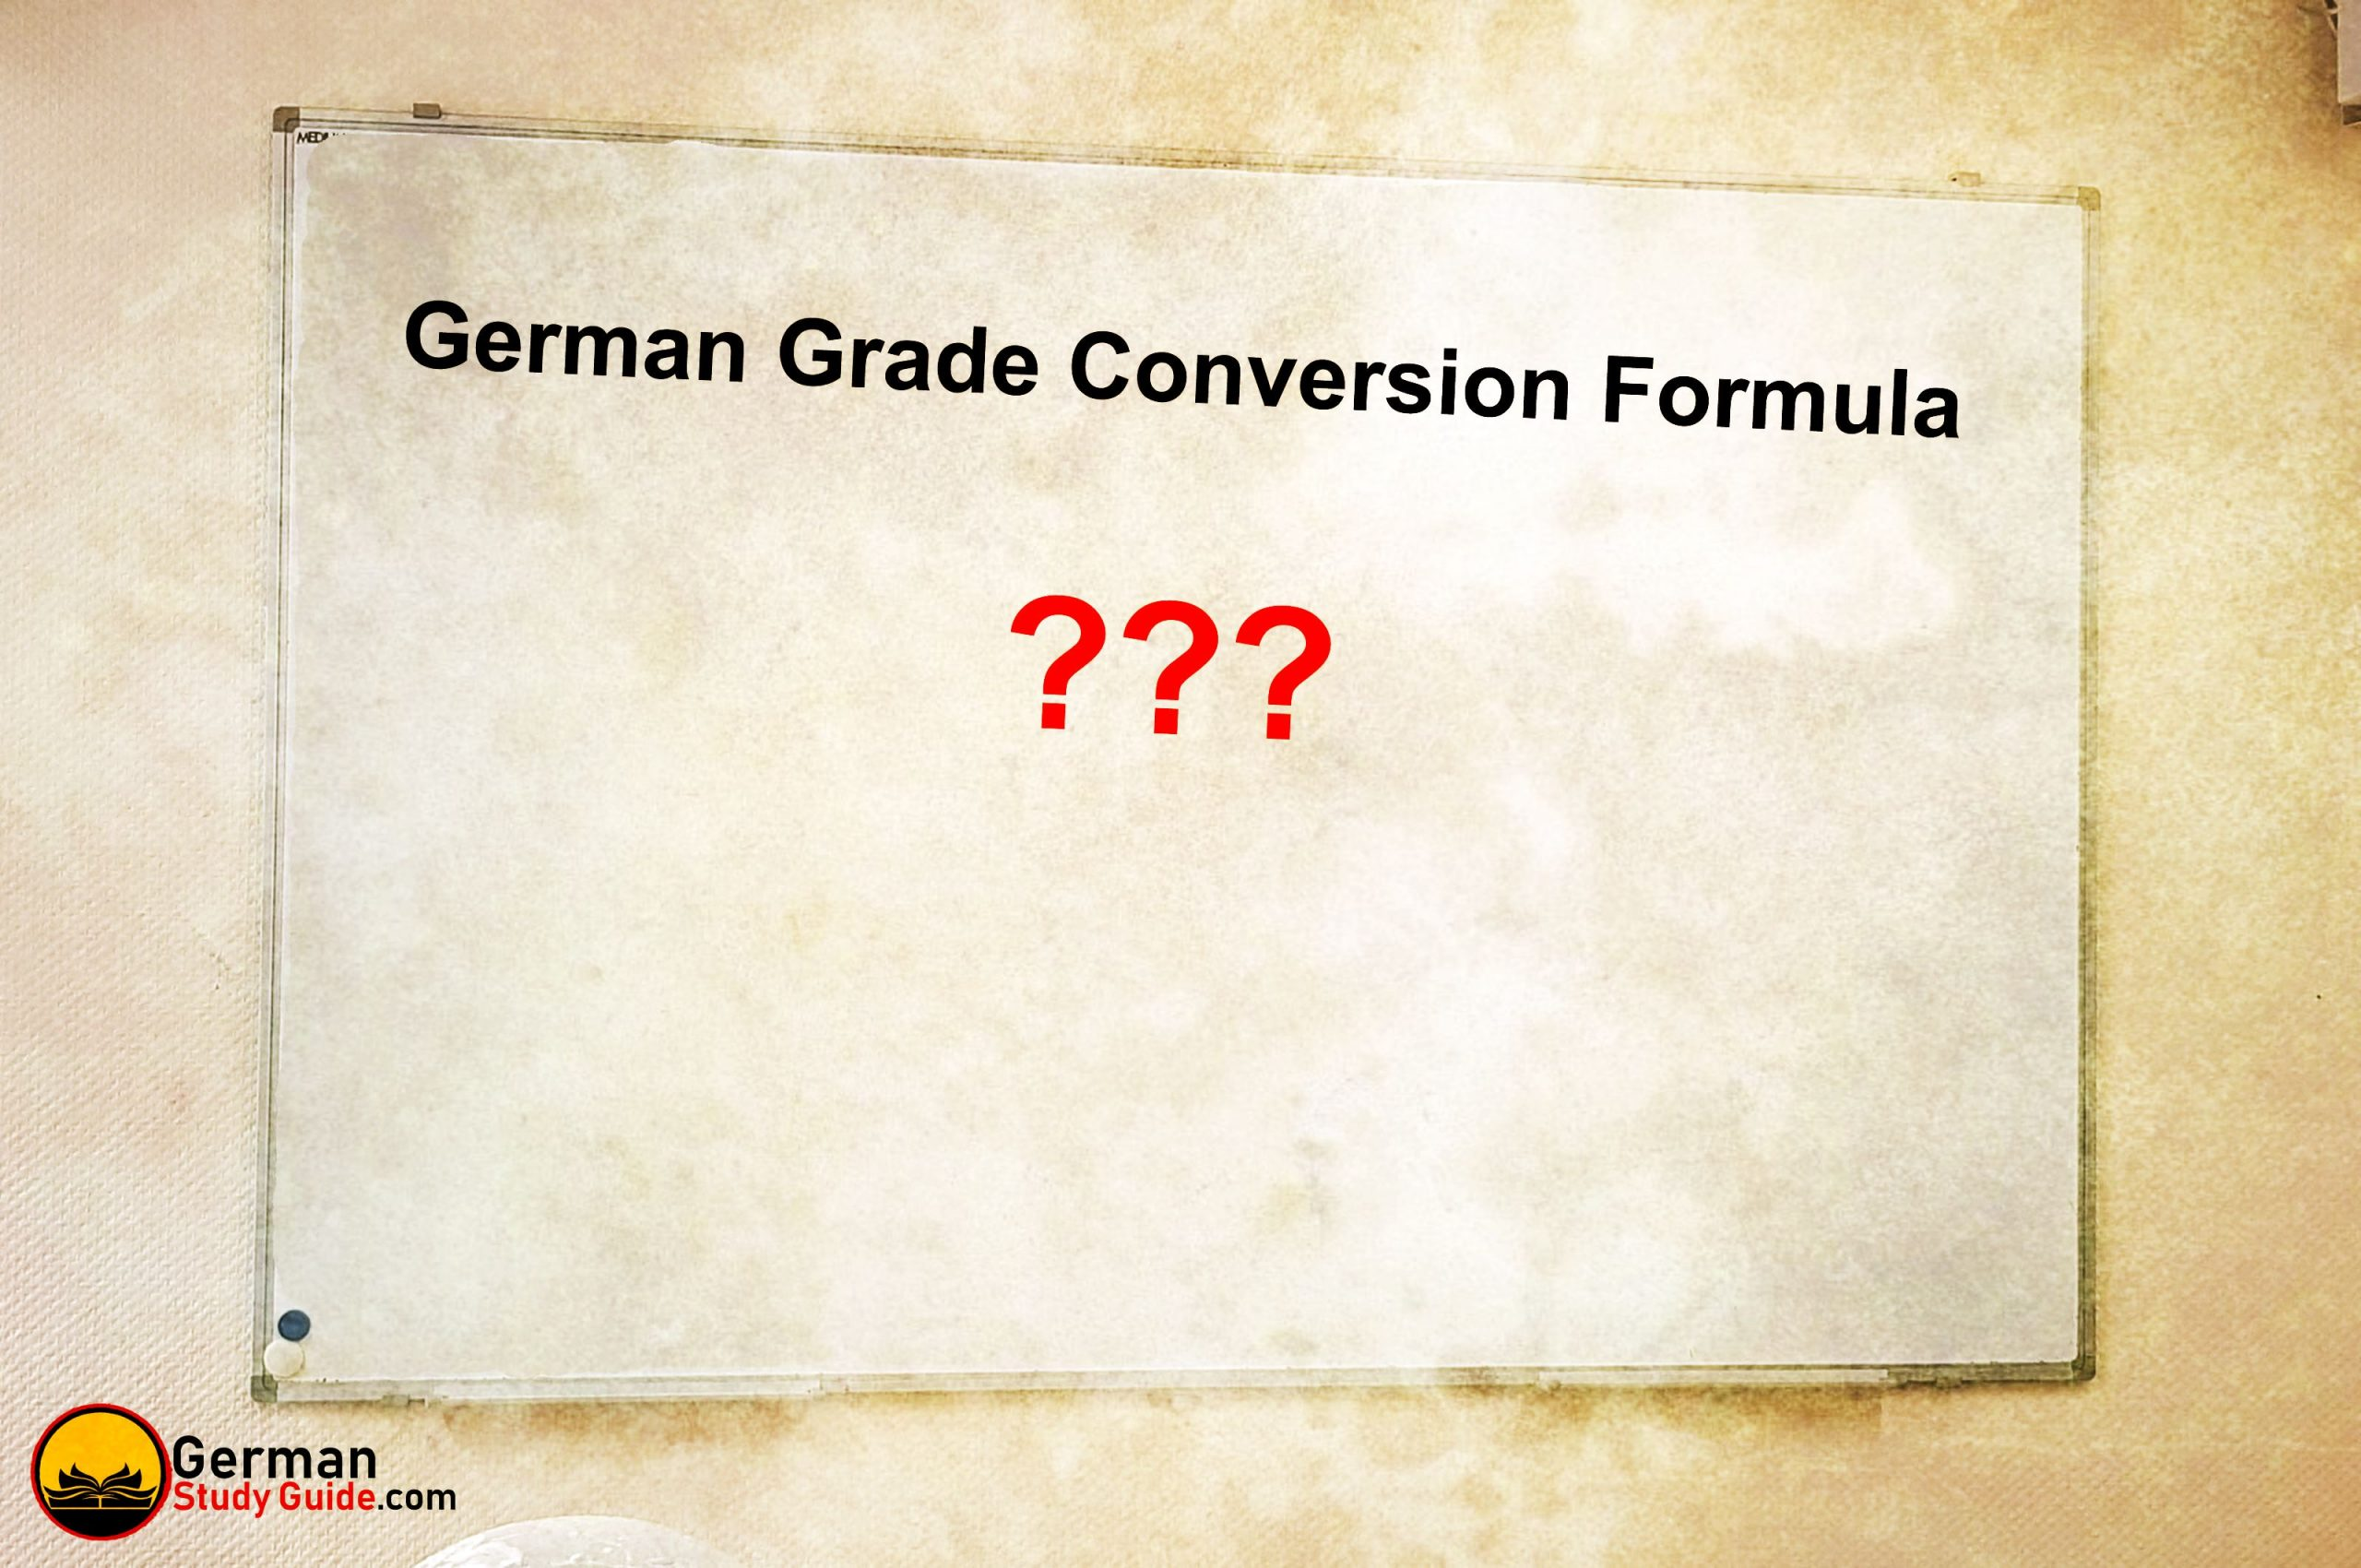 German Grade Conversion Formula